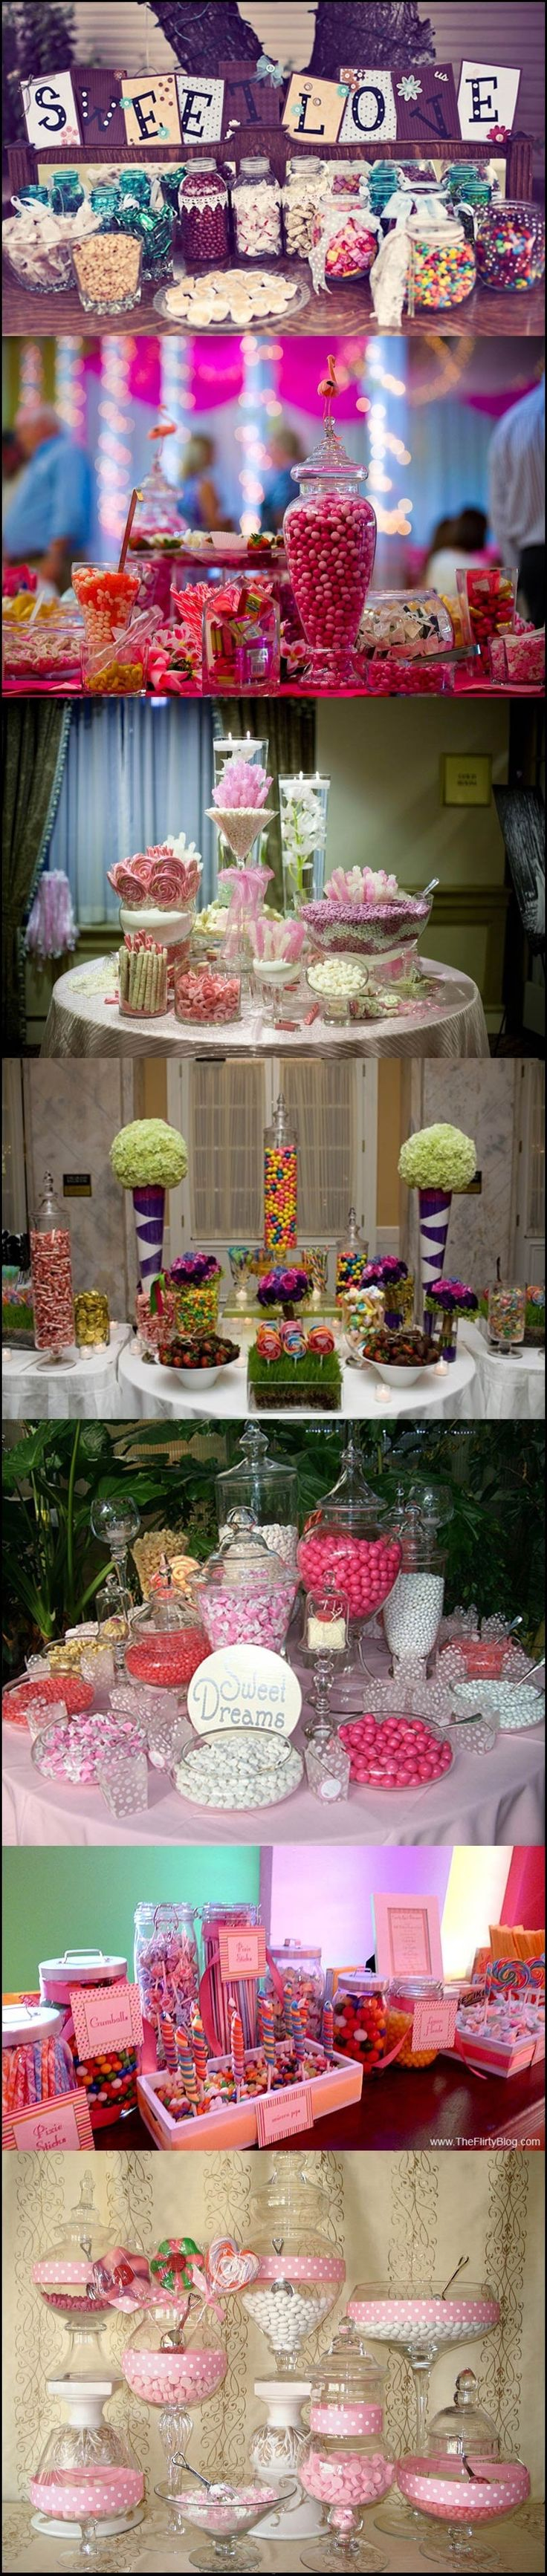 Candy buffet inspiration!